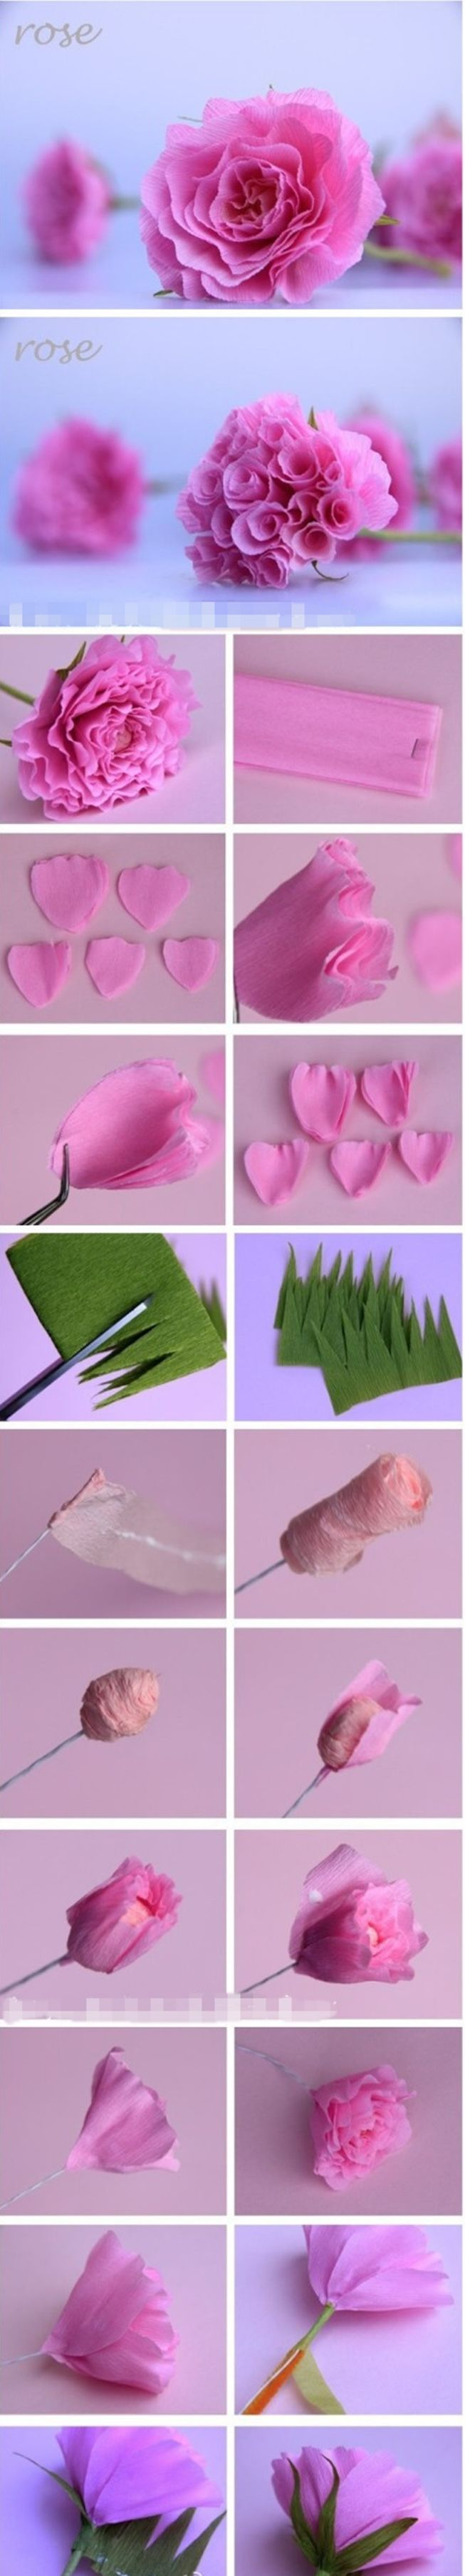 How to make paper flowers using origami the art of paper folding how to make paper flowers using origami the art of paper folding fun paper diy on dhlflorist Choice Image